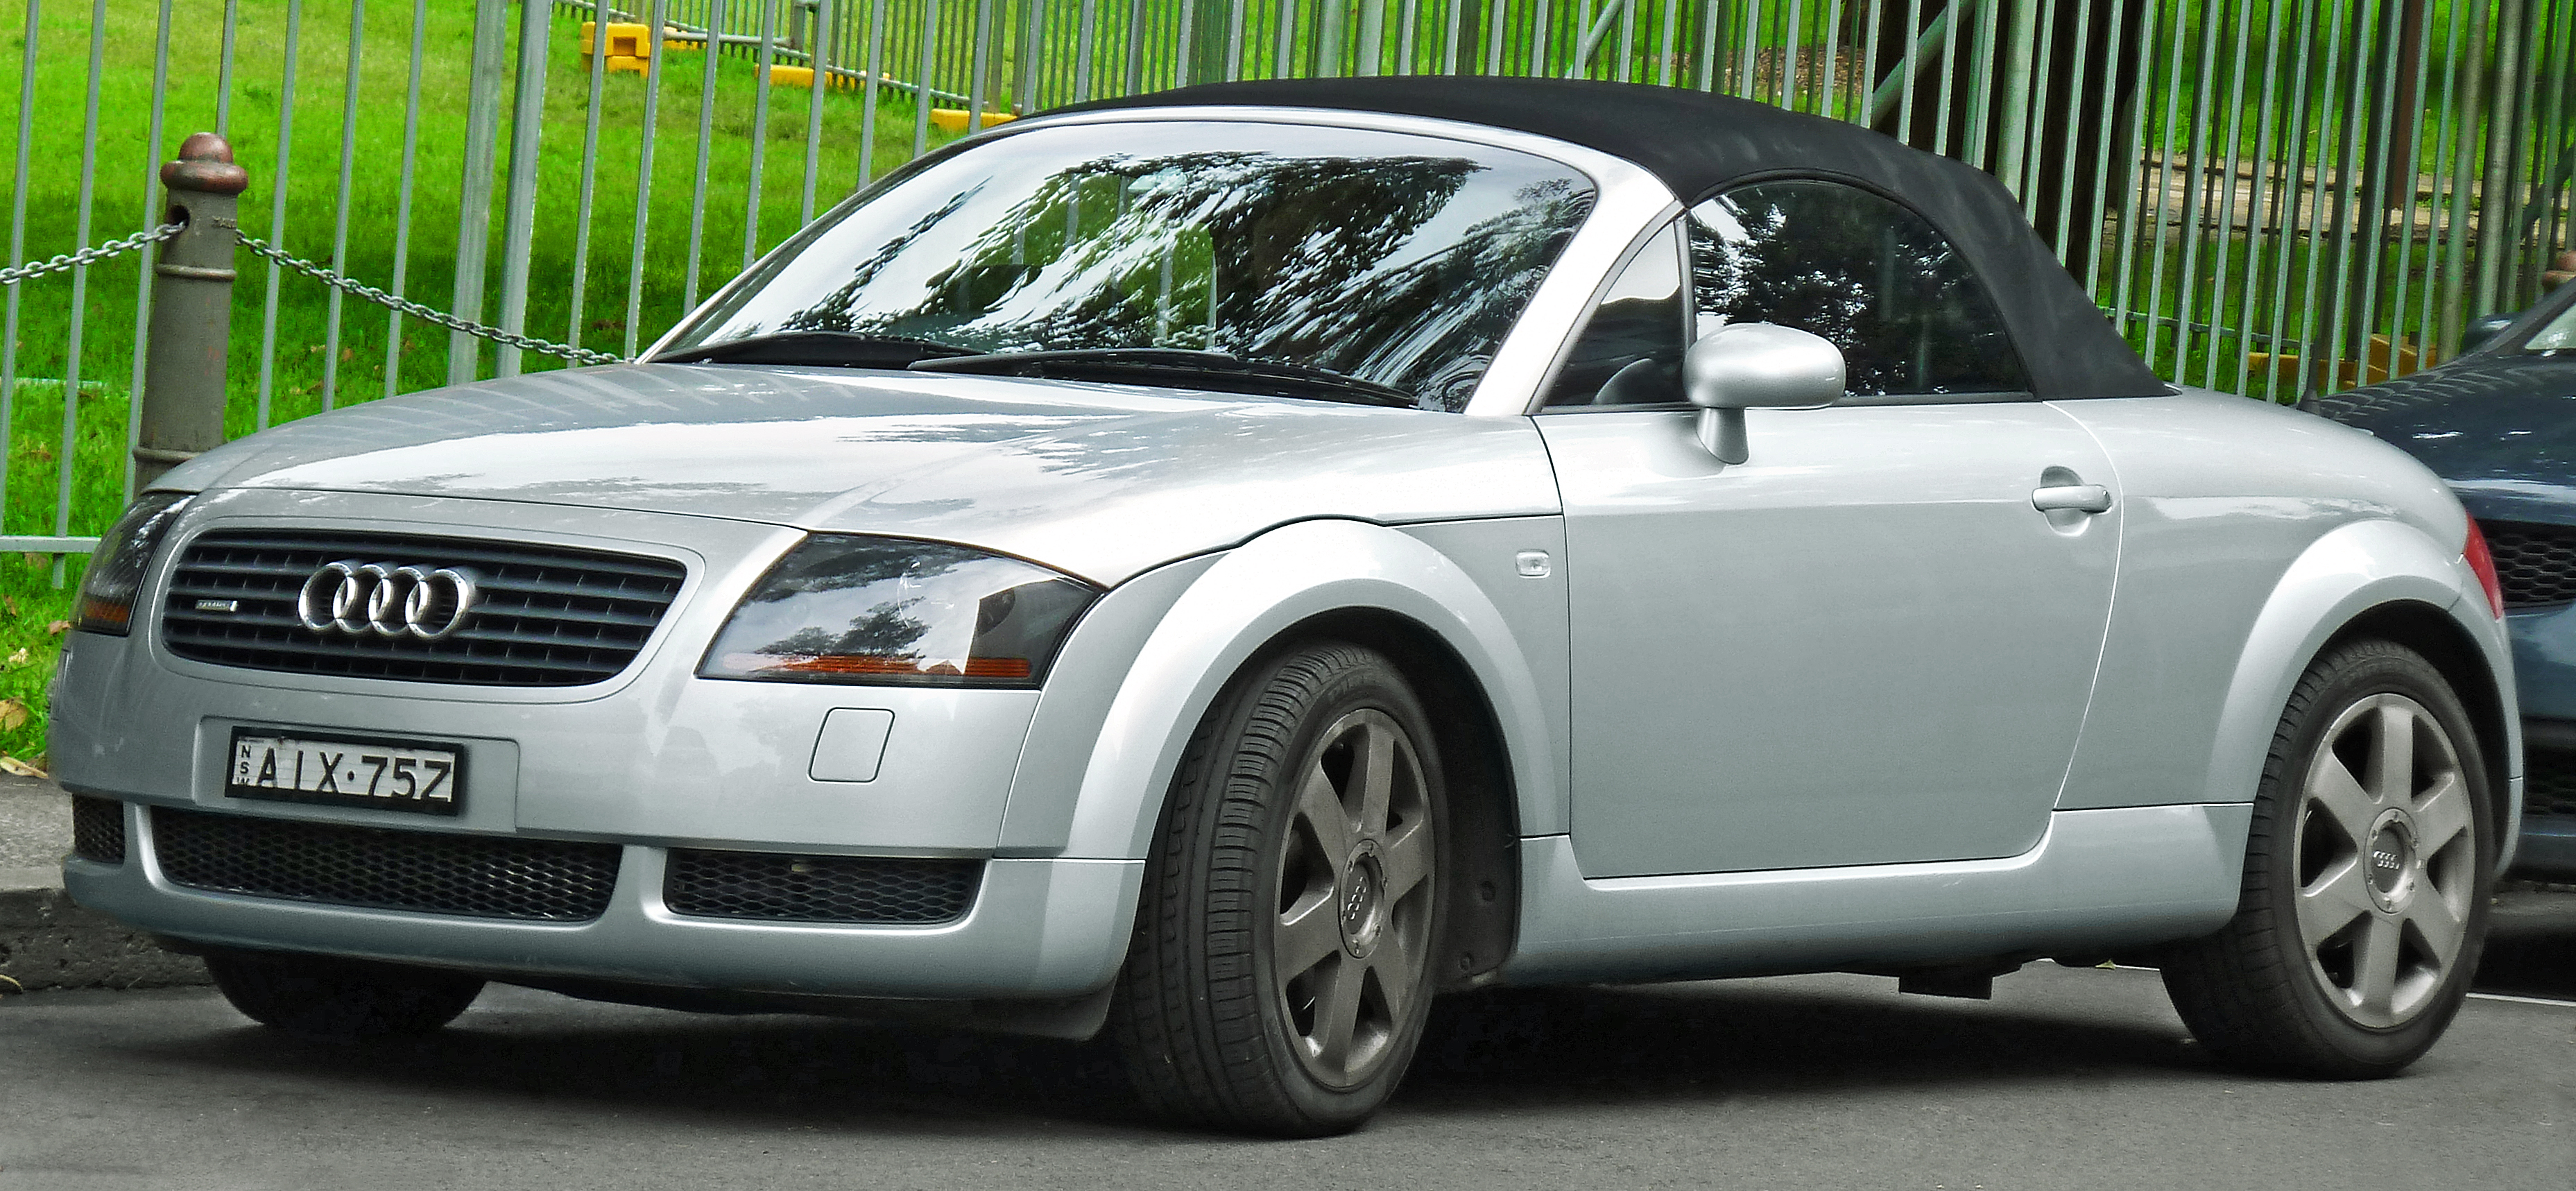 2003 Audi TT  User Reviews  CarGurus